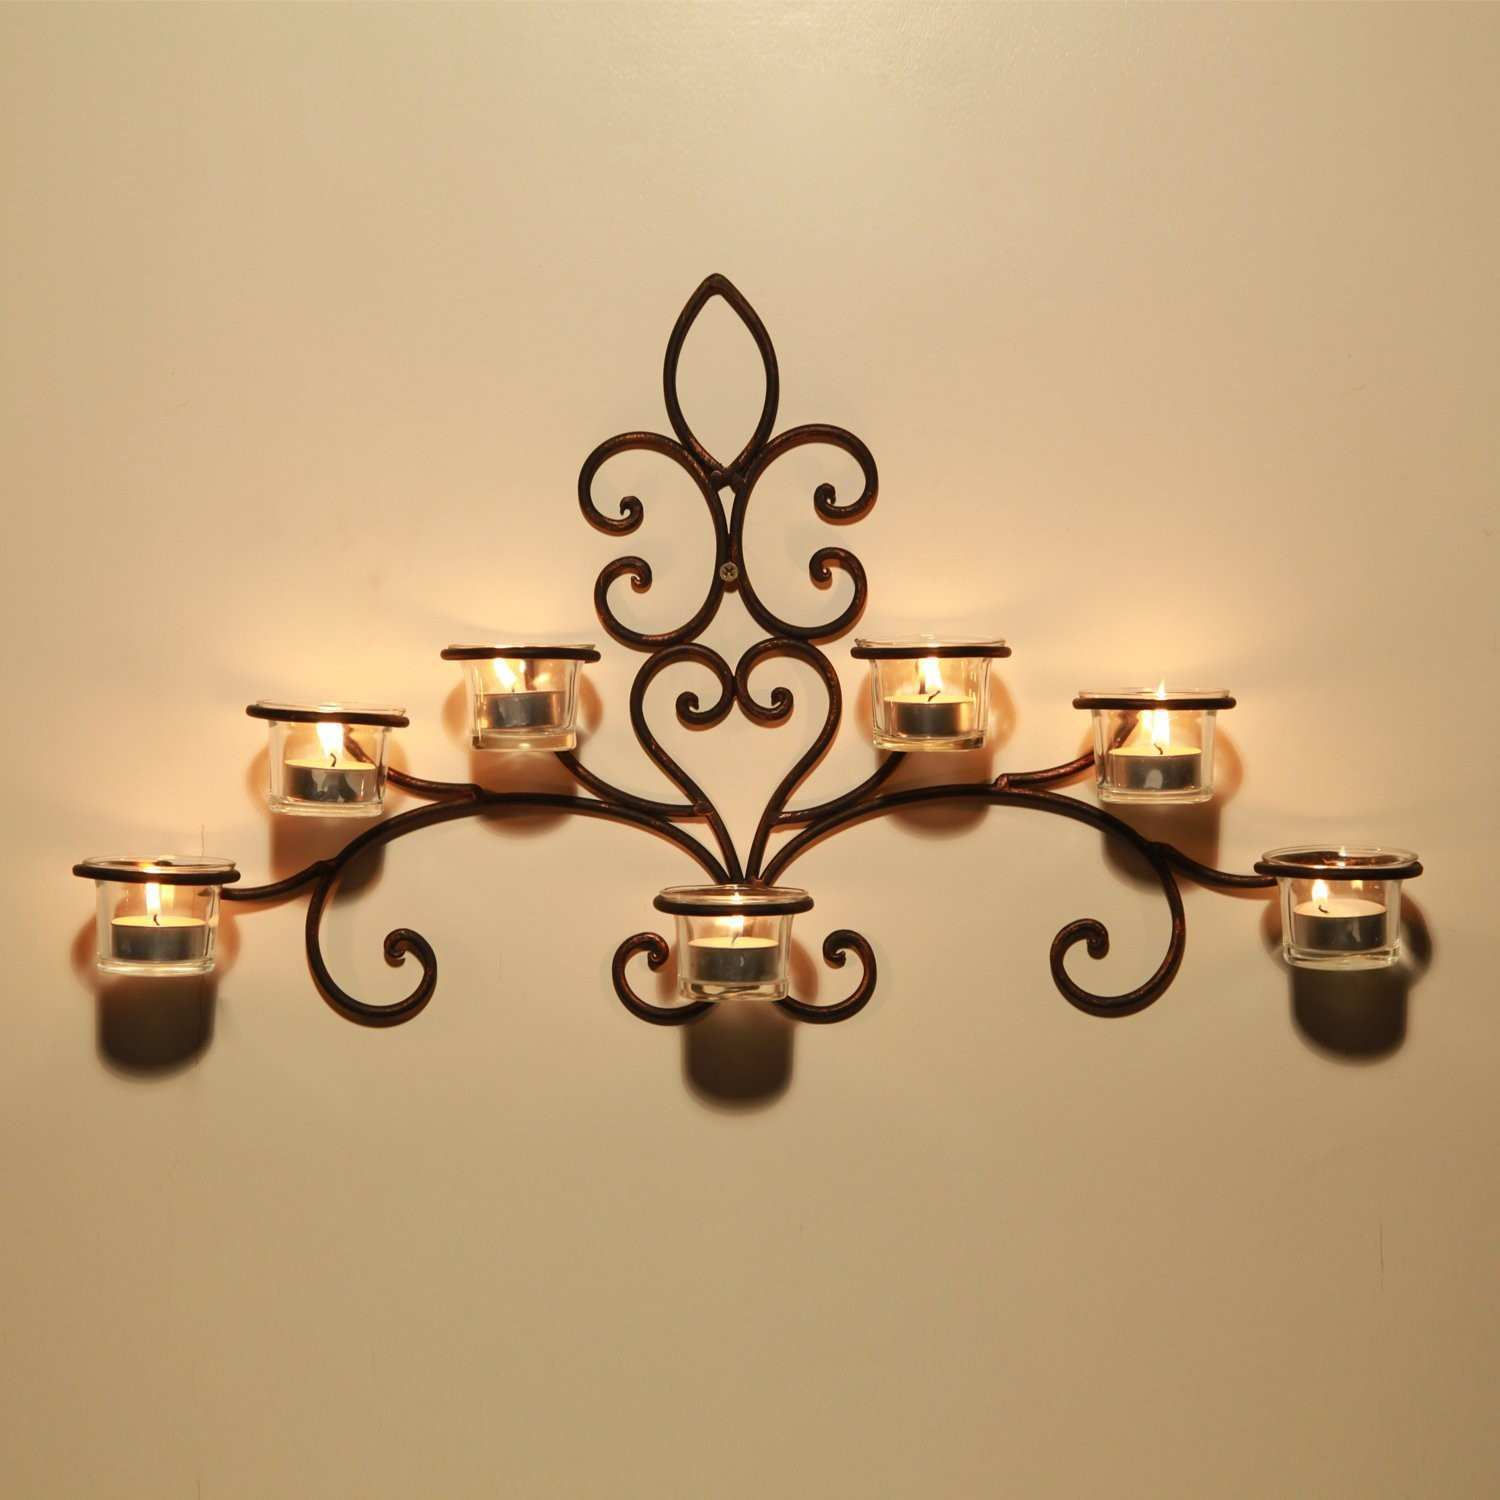 Awesome Black Wrought Iron Wall Decor | Wall Art Ideas